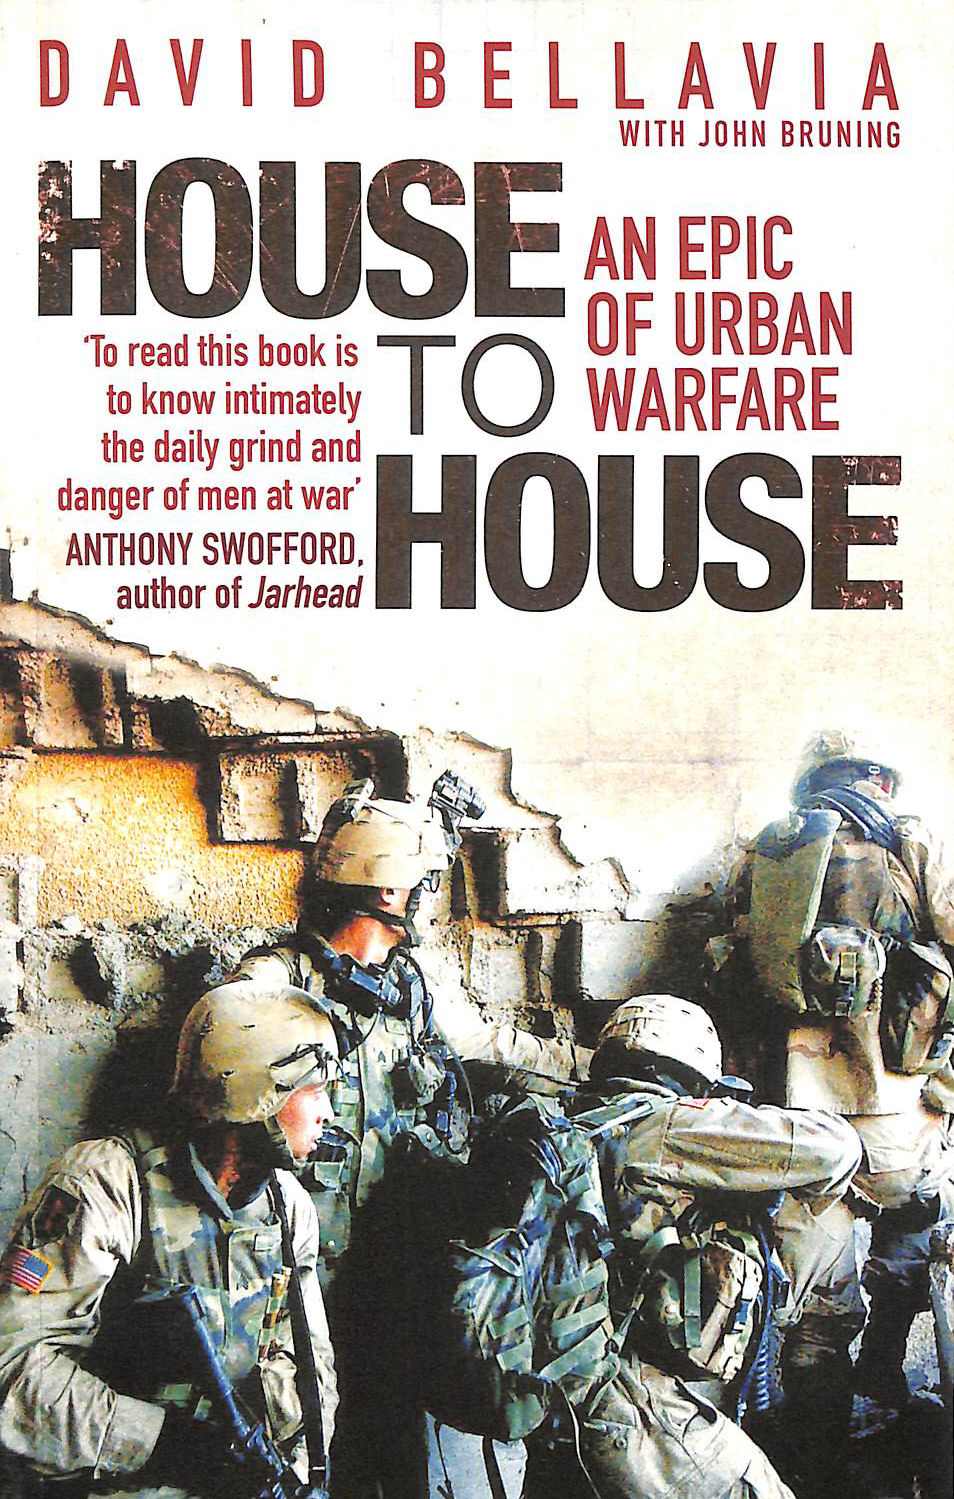 Image for House To House: An Epic Of Urban Warfare